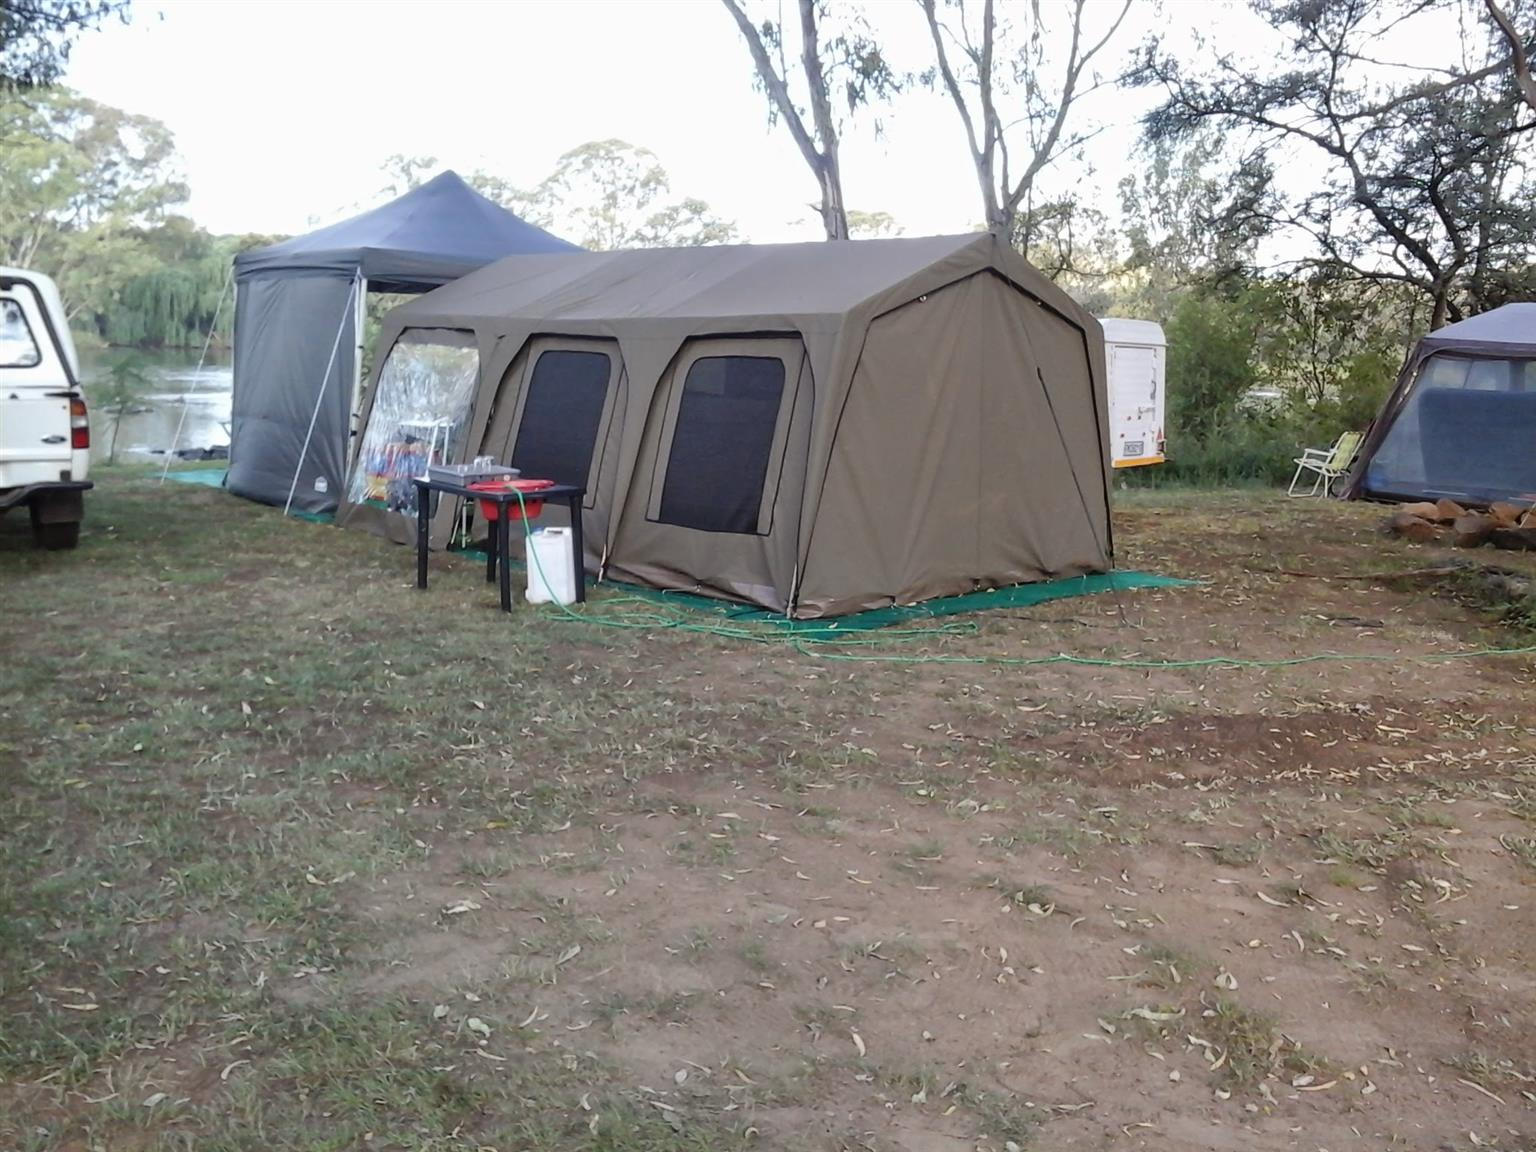 2 in 1 Combo tent with side panels & 2 in 1 Combo tent with side panels | Junk Mail